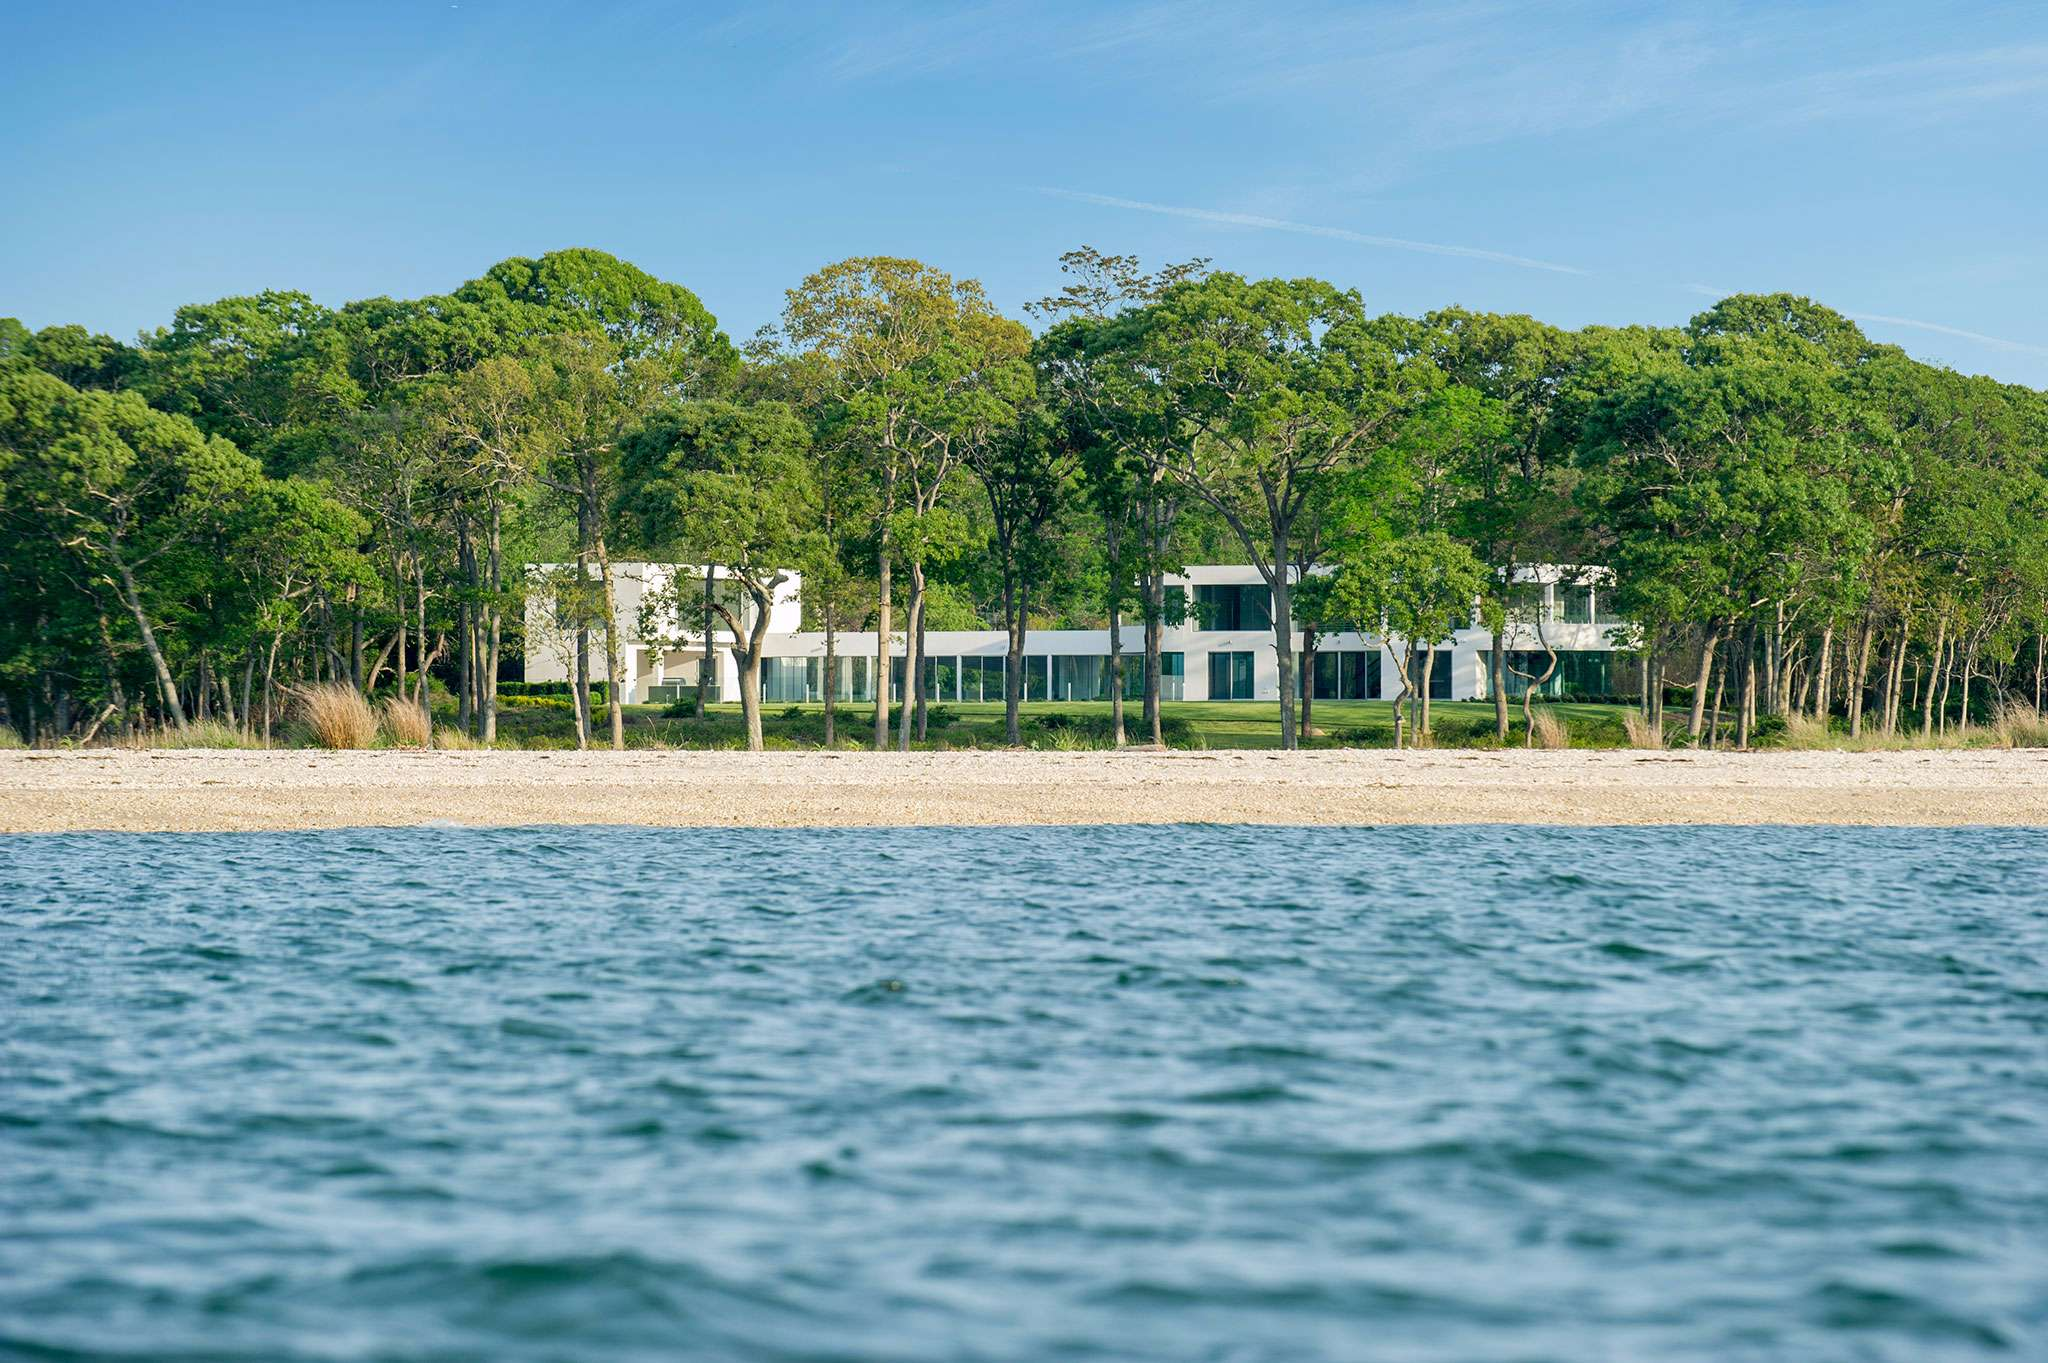 Single Family Home for Sale at Modern At The Point 6 Seaponack Drive, Sag Harbor, New York